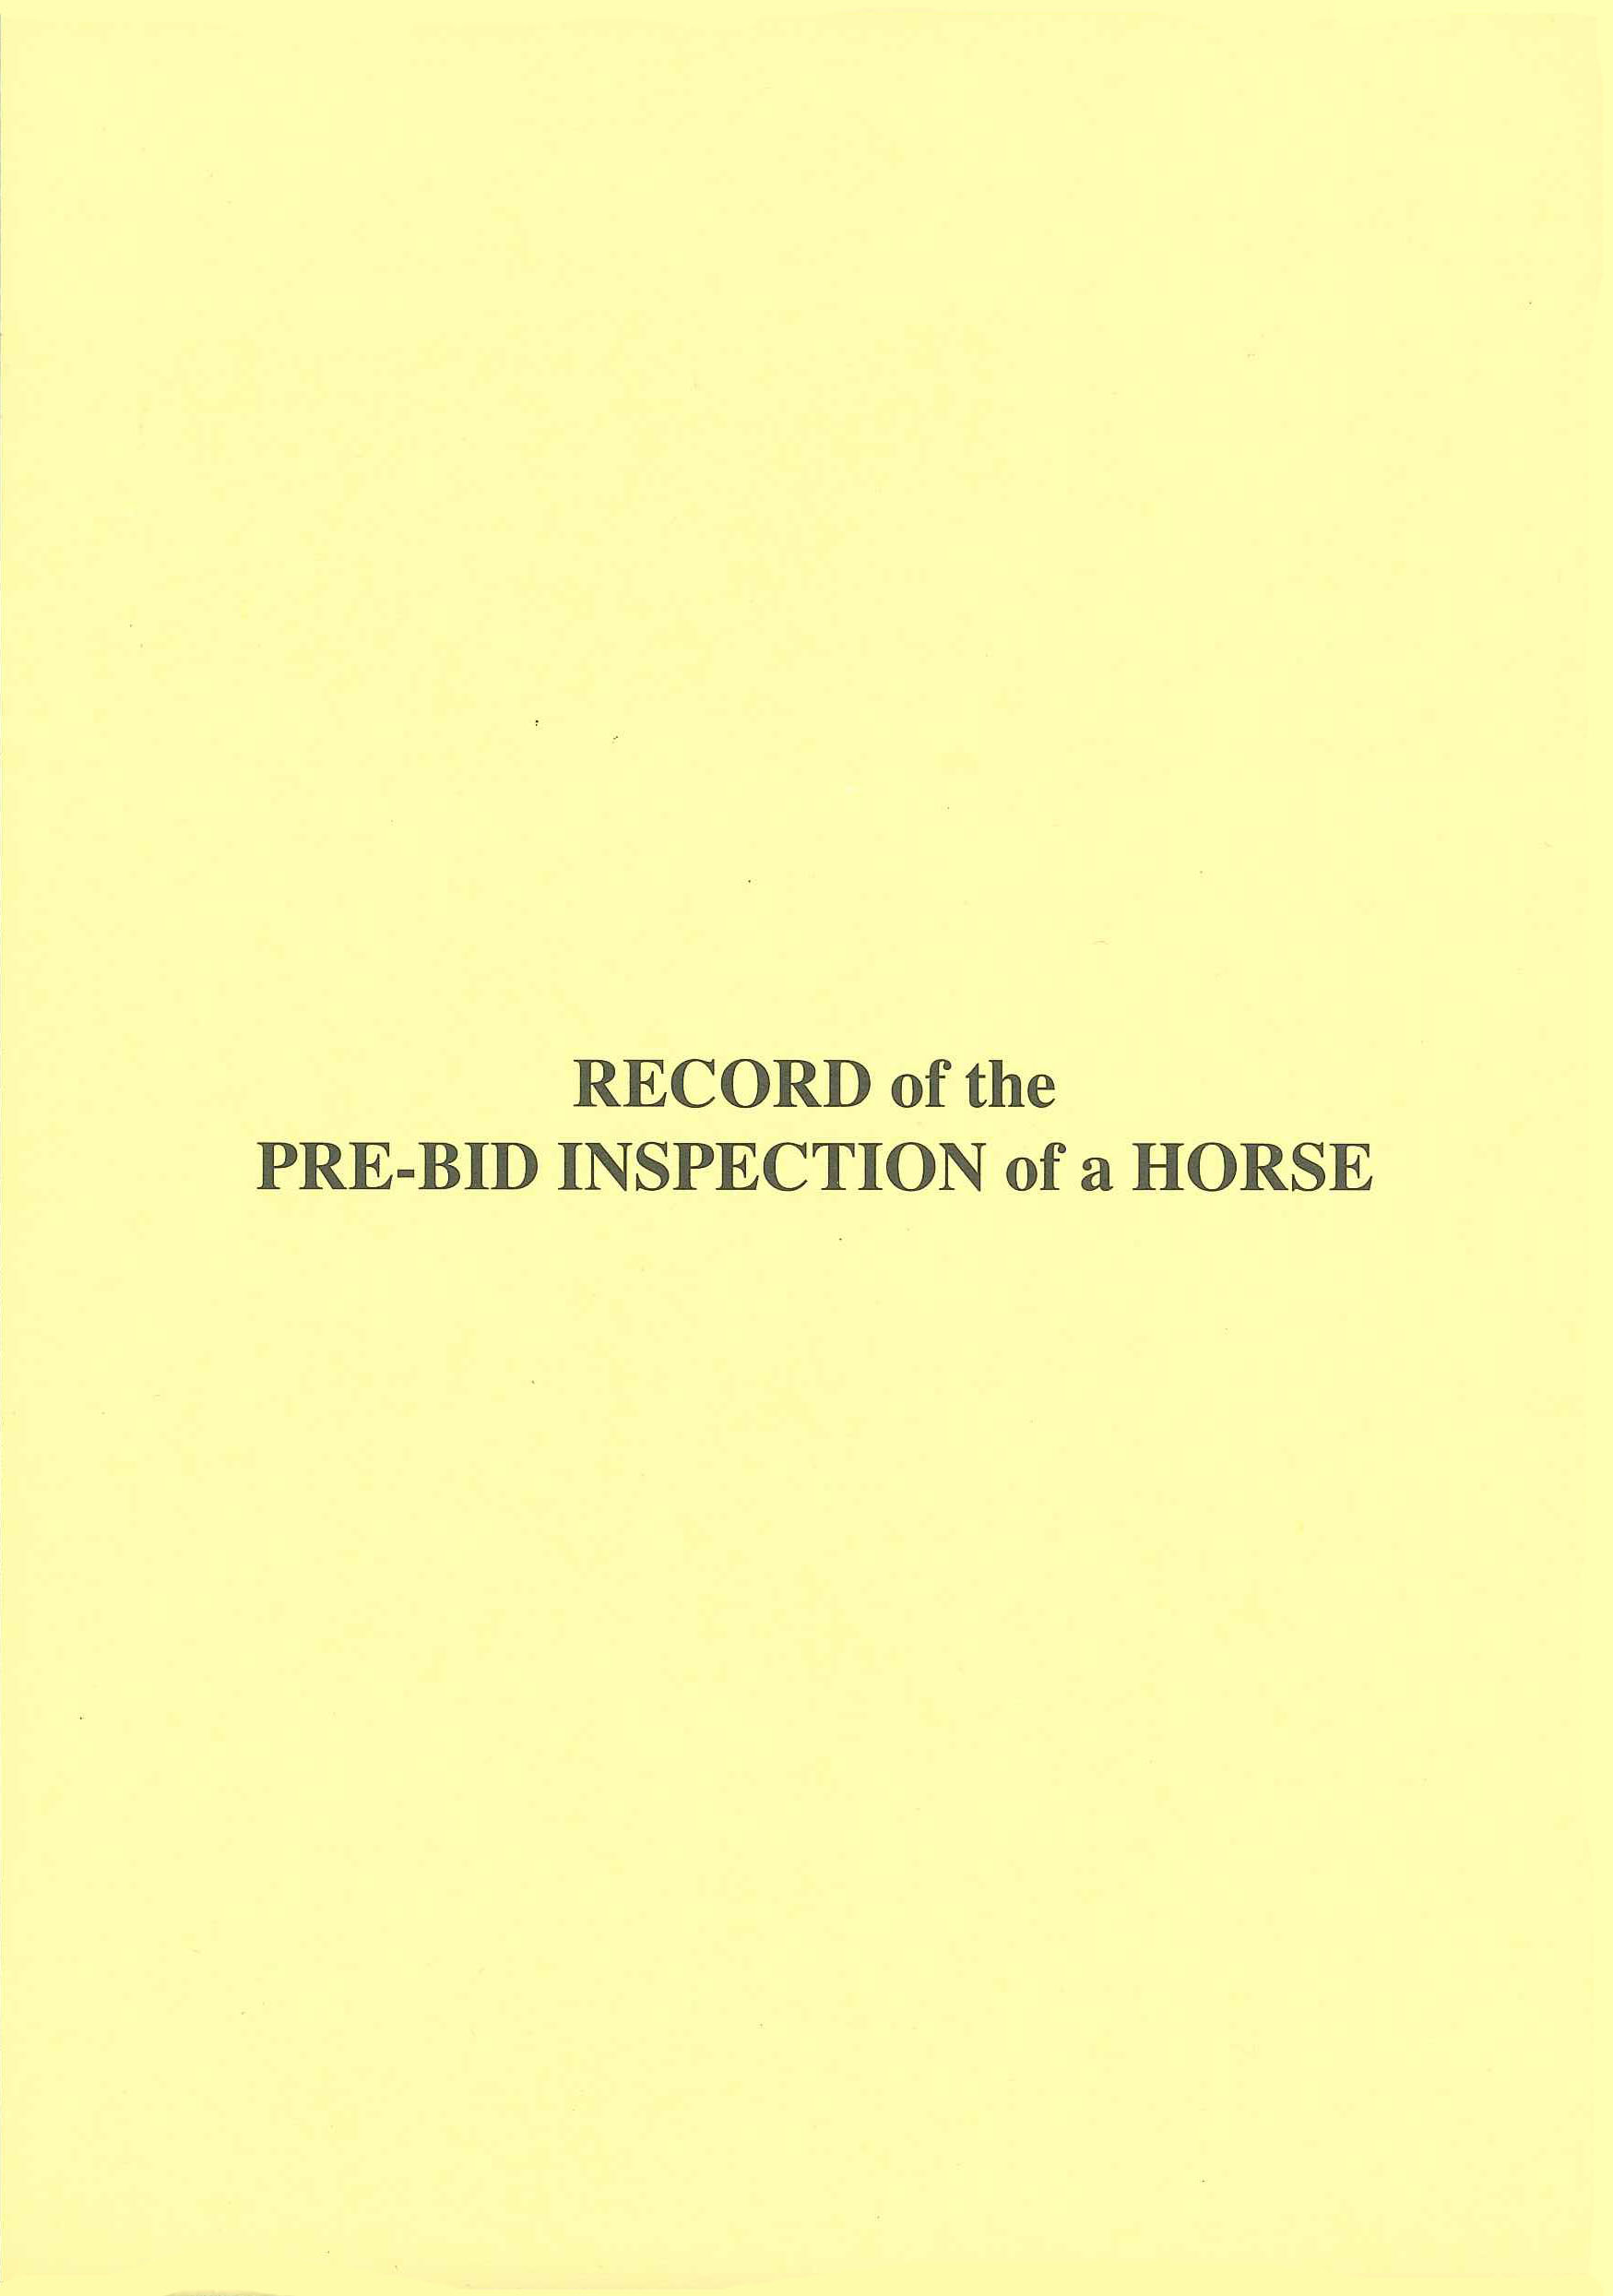 Record of Pre-Bid Inspection of a Horse